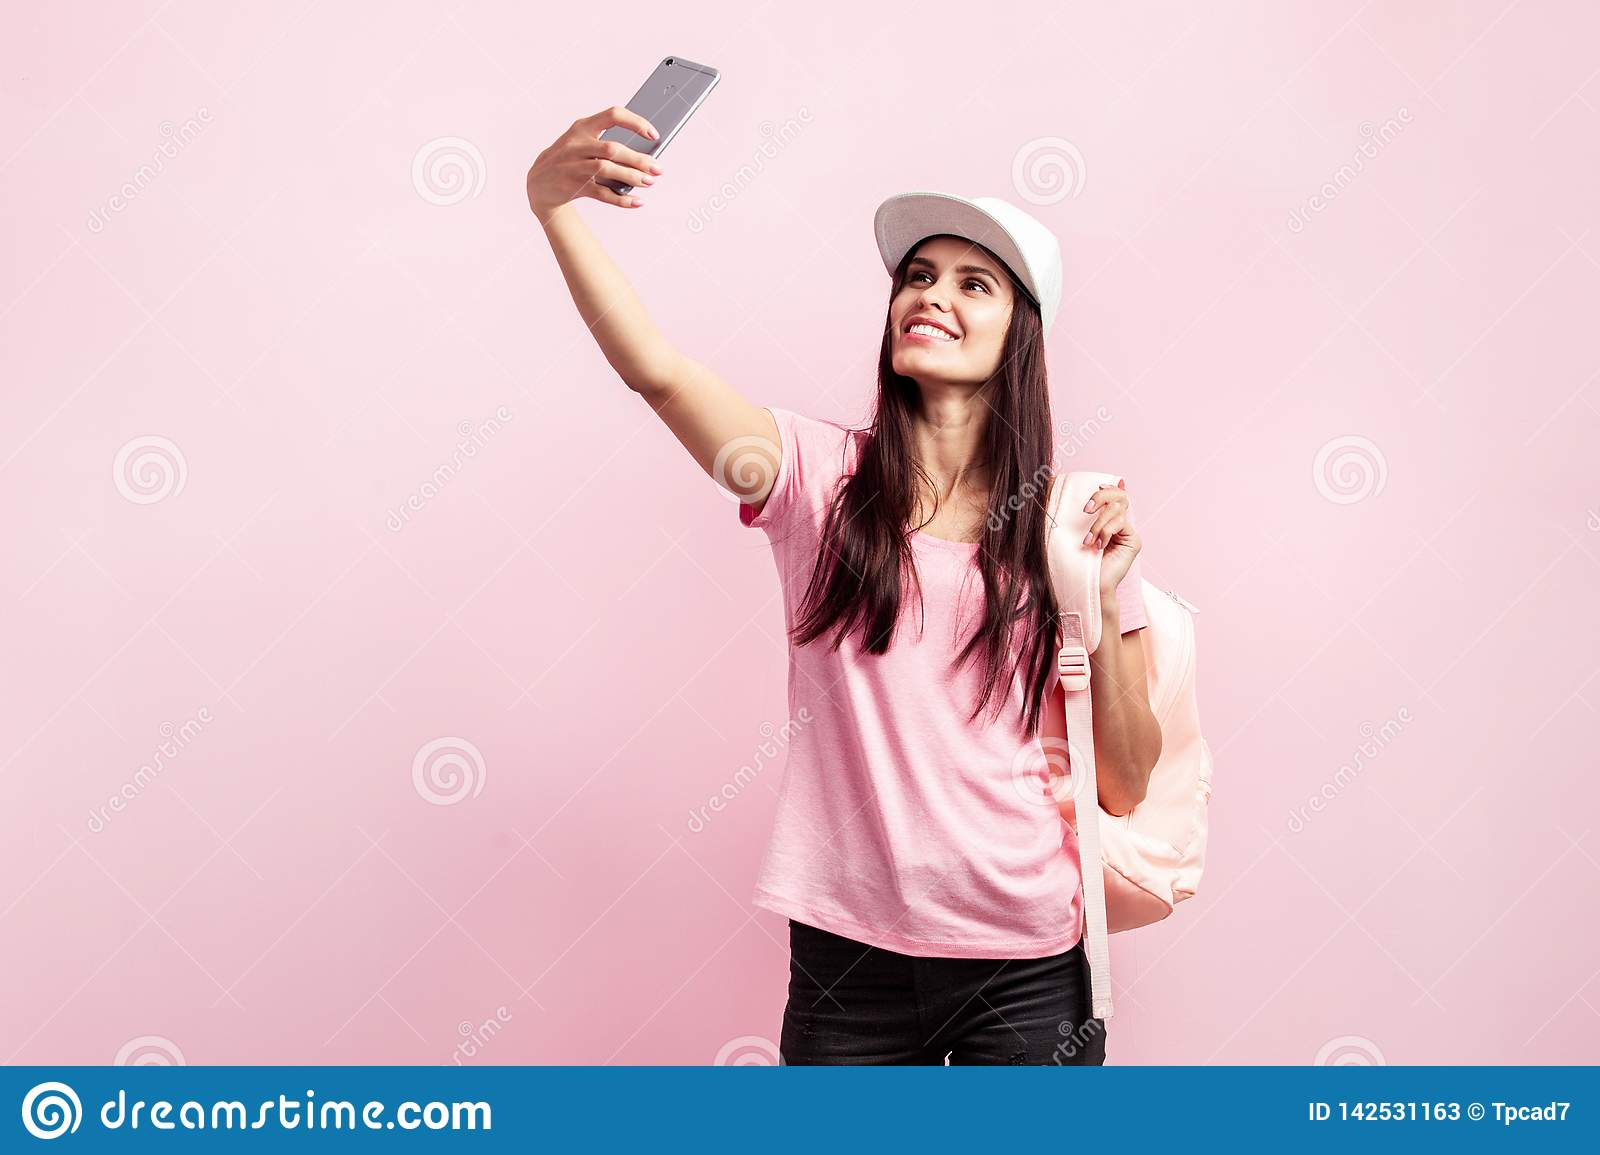 Beautiful girl in white cap and with a backpack on her shoulders dressed in pink t-shirt and black jeans is doing selfie